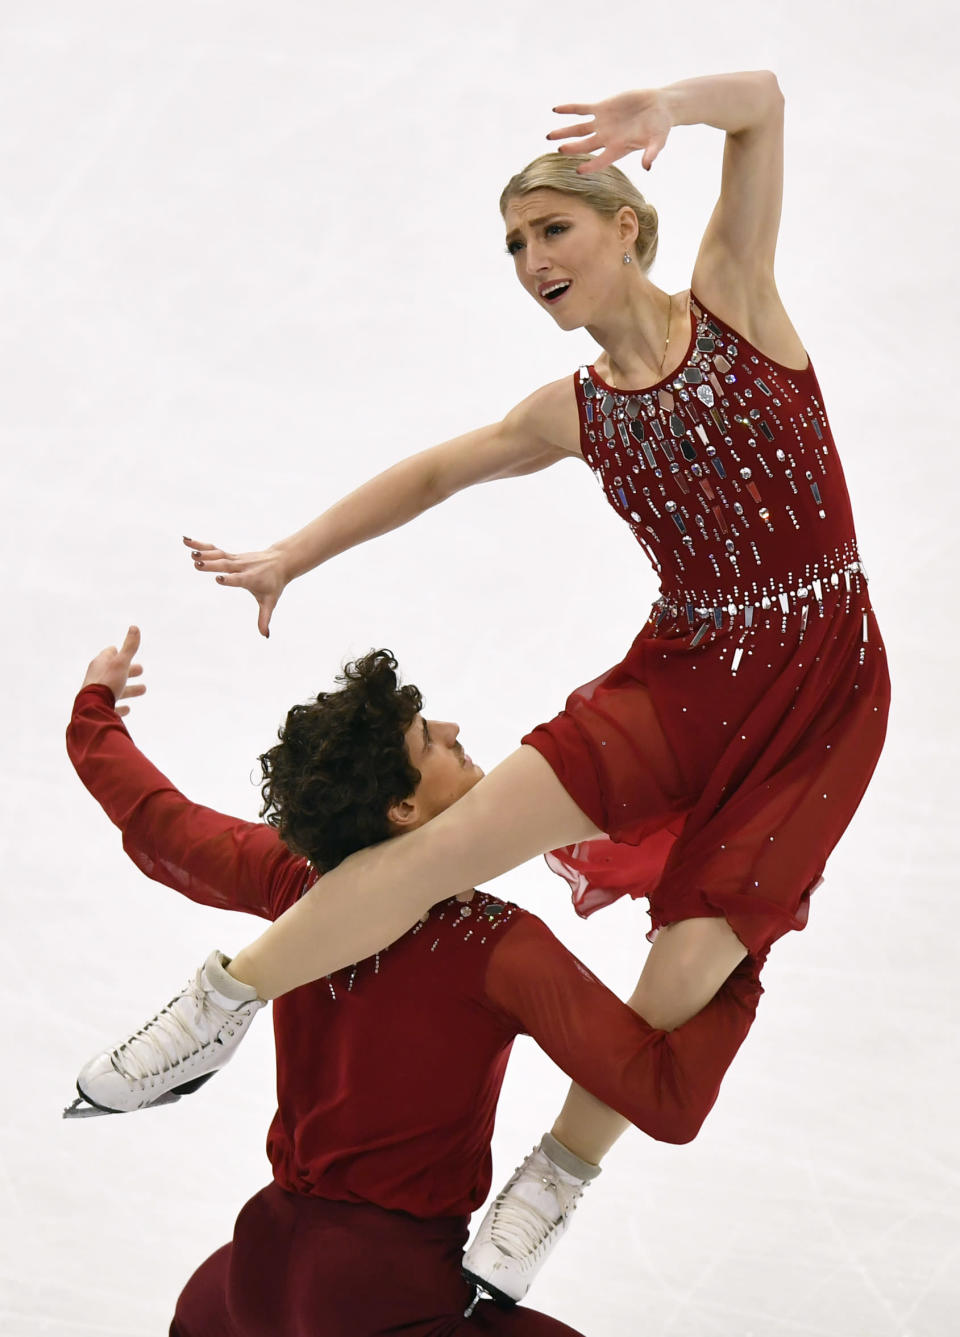 Piper Gilles and Paul Poirier of Canada perform during the Ice Dance-Free Dance at the Figure Skating World Championships in Stockholm, Sweden, Saturday, March 27, 2021. (AP Photo/Martin Meissner)